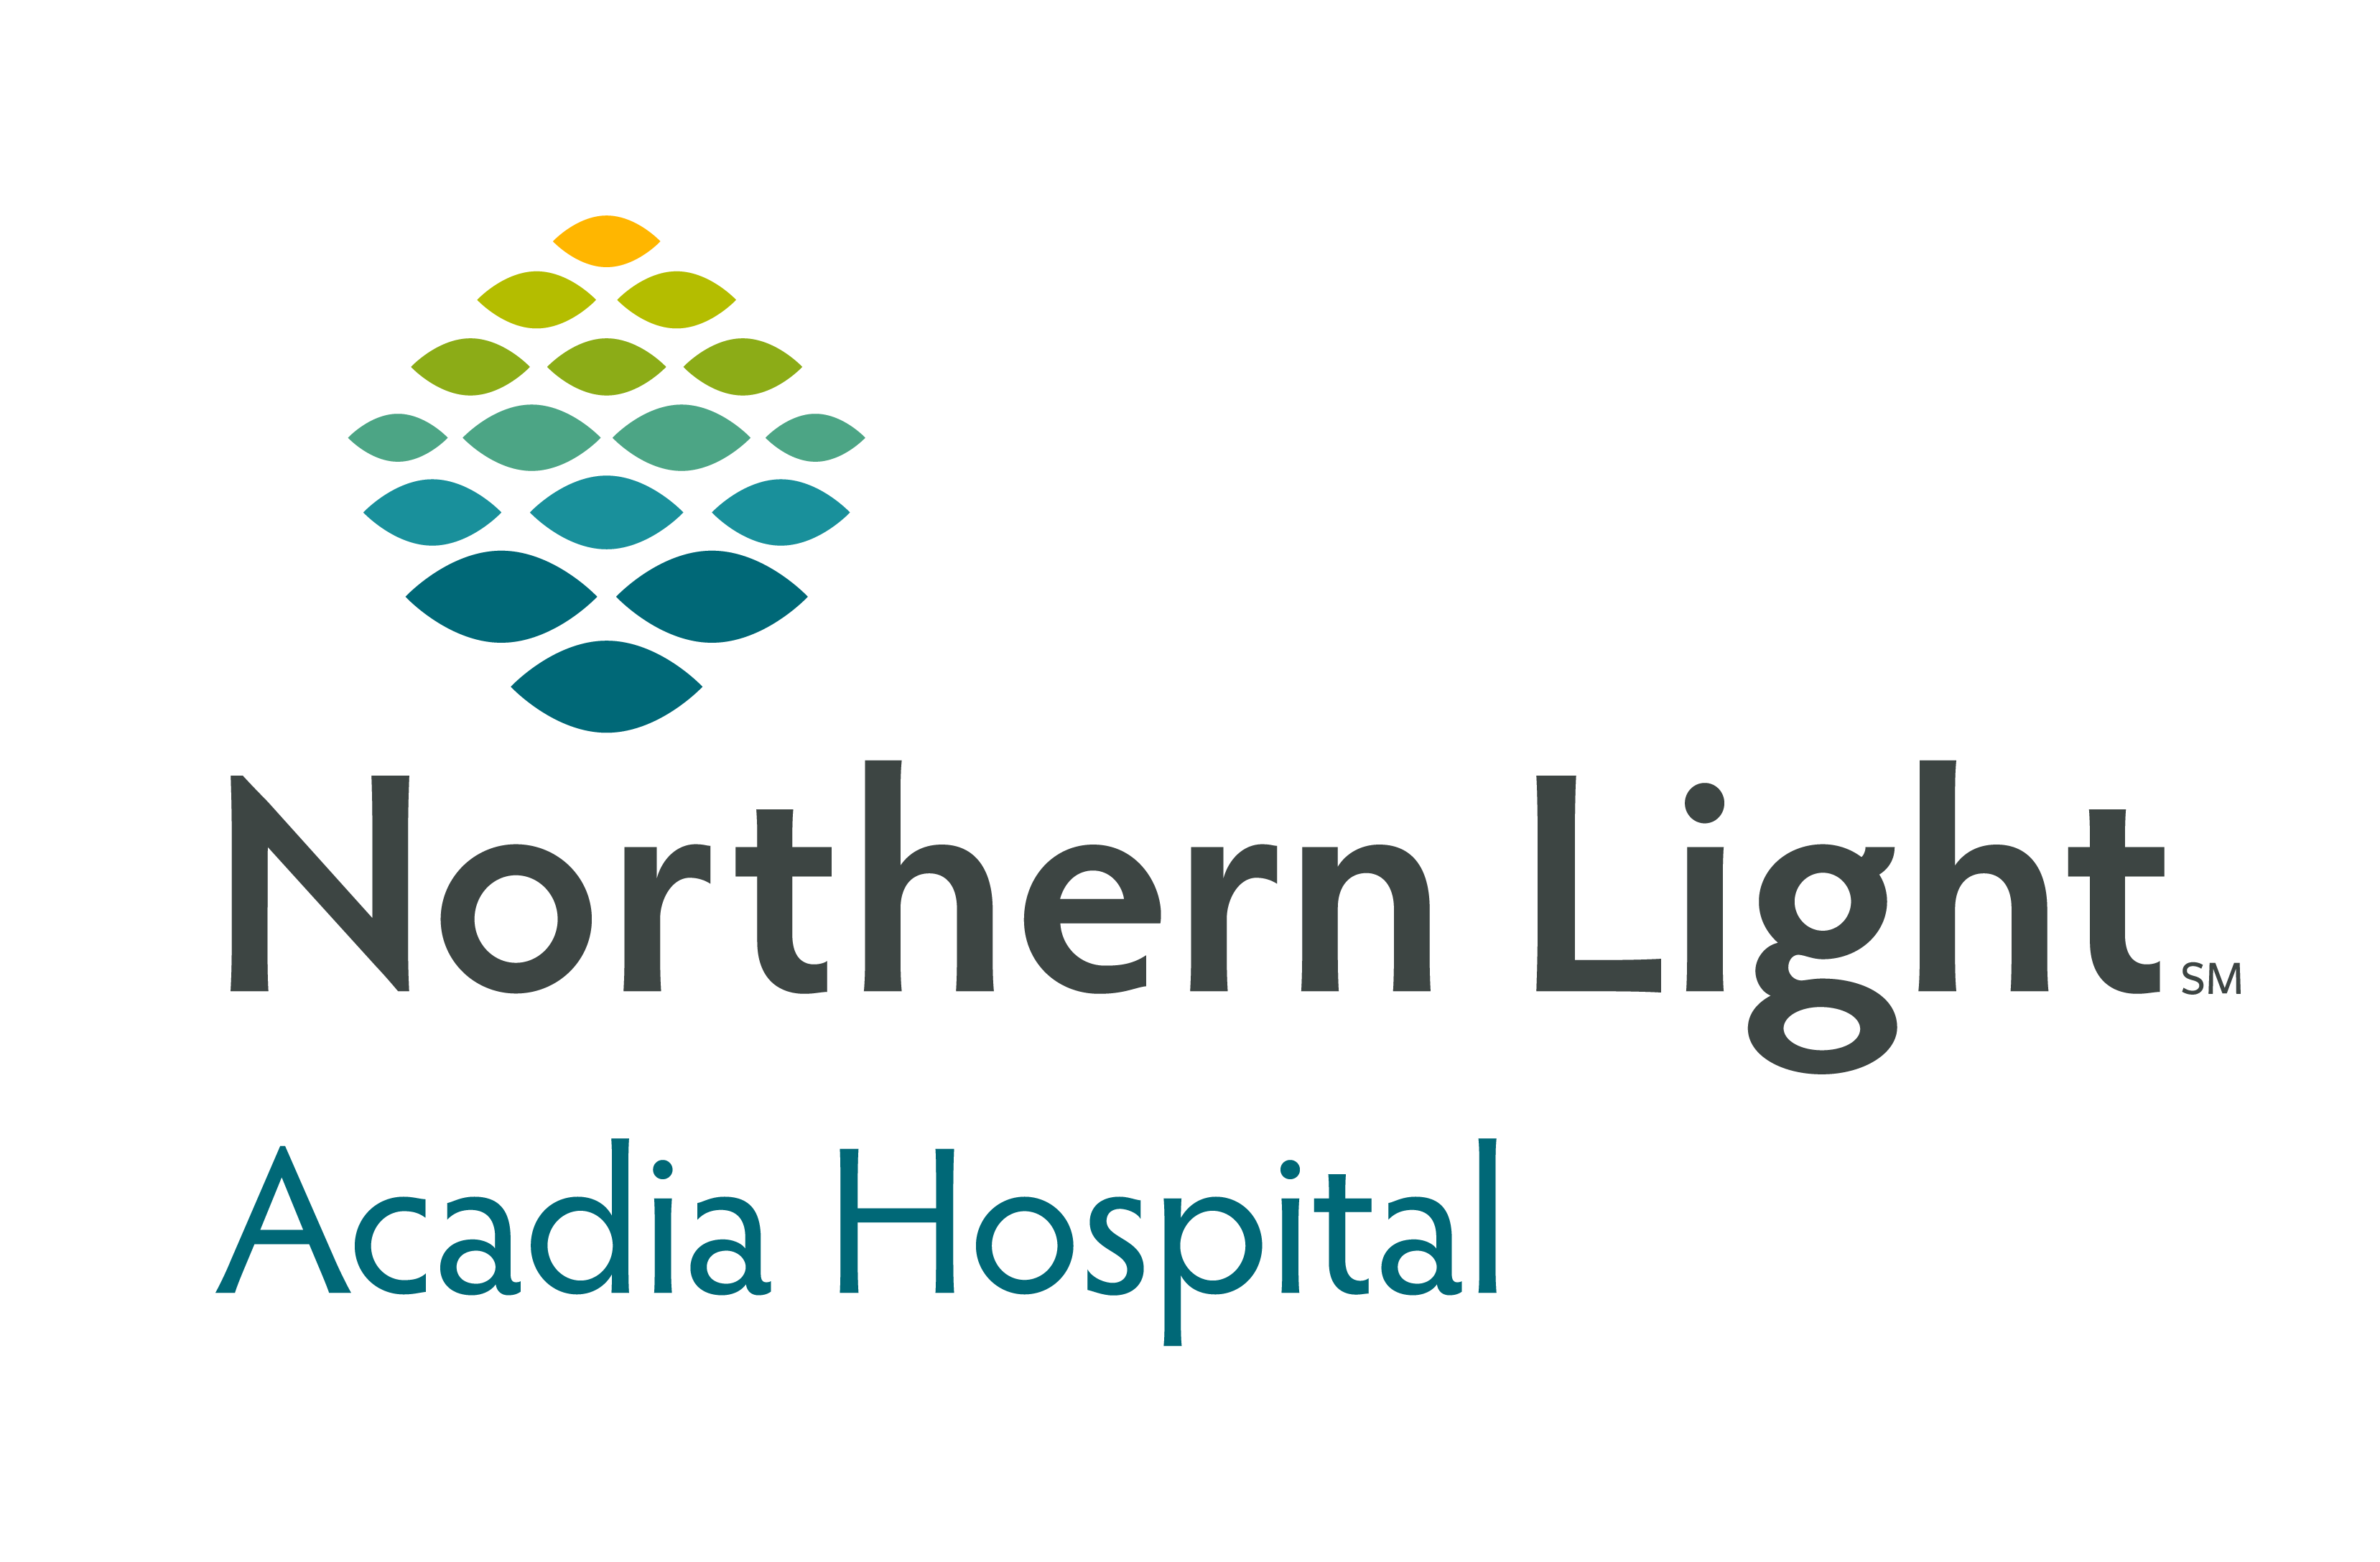 Clinical Psychology Opportunity - Beautiful State of Maine - Northern Light Acadia Hospital